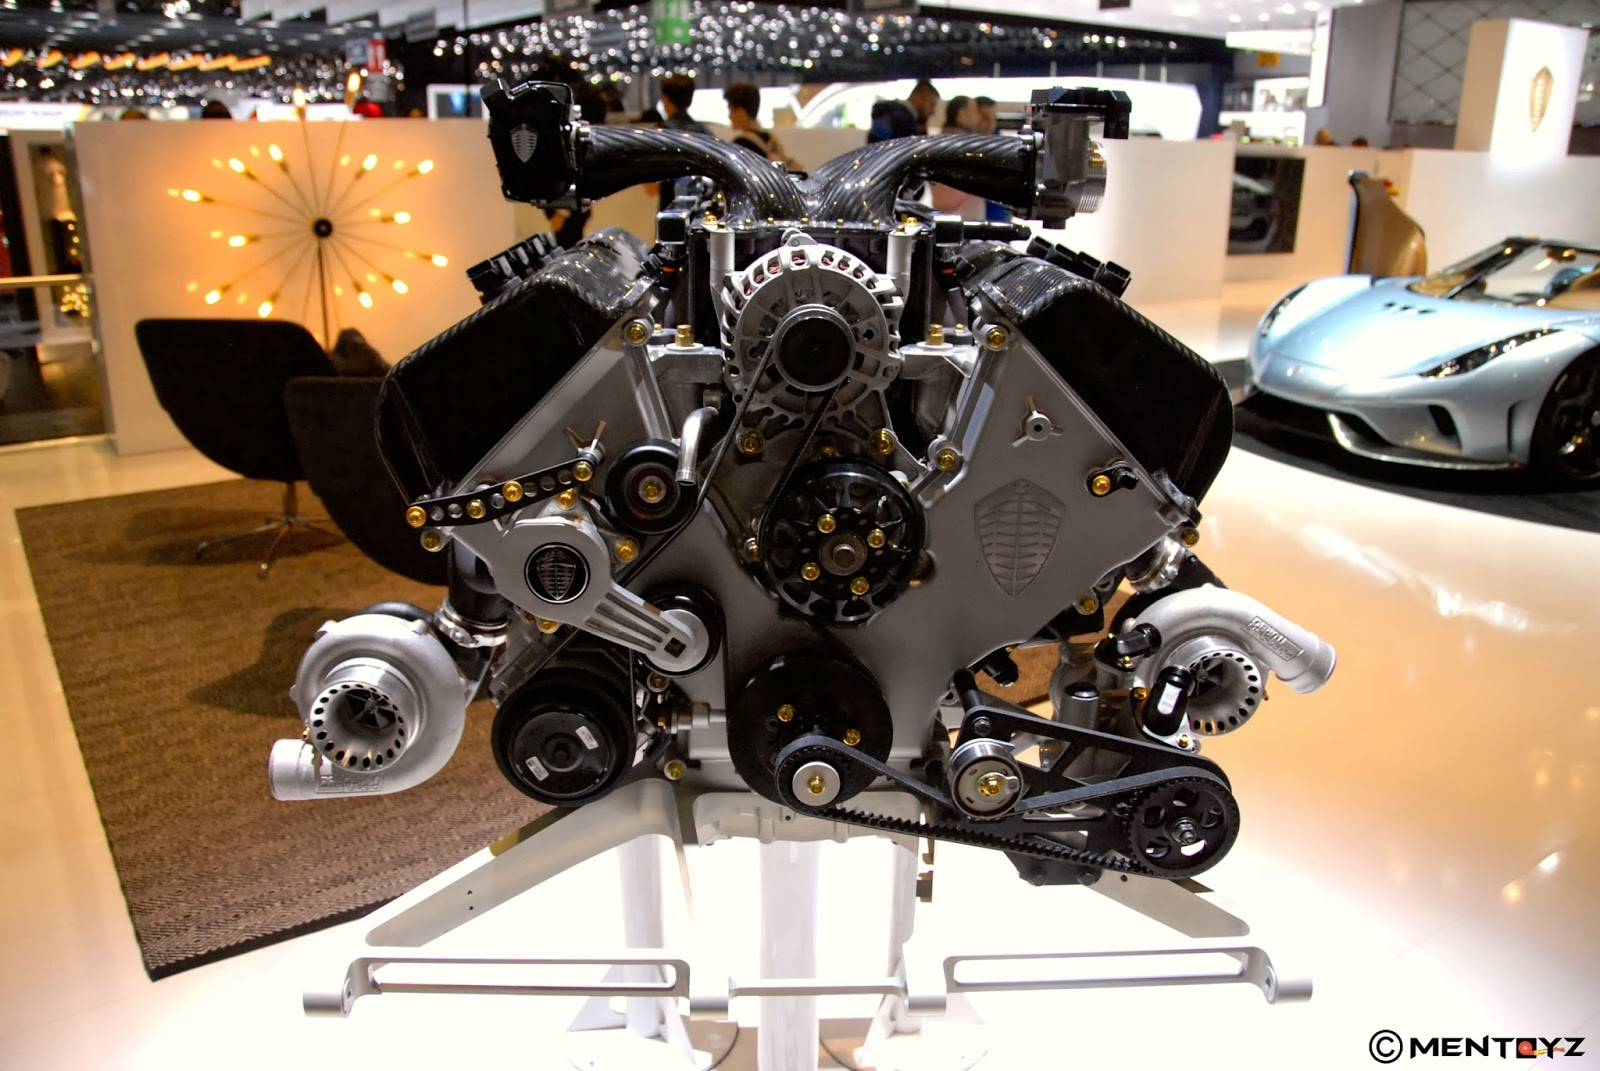 Von Koenigsegg Invented The Direct Drive System Kdd And It Was Developed For Regera By Advanced Engineering Team